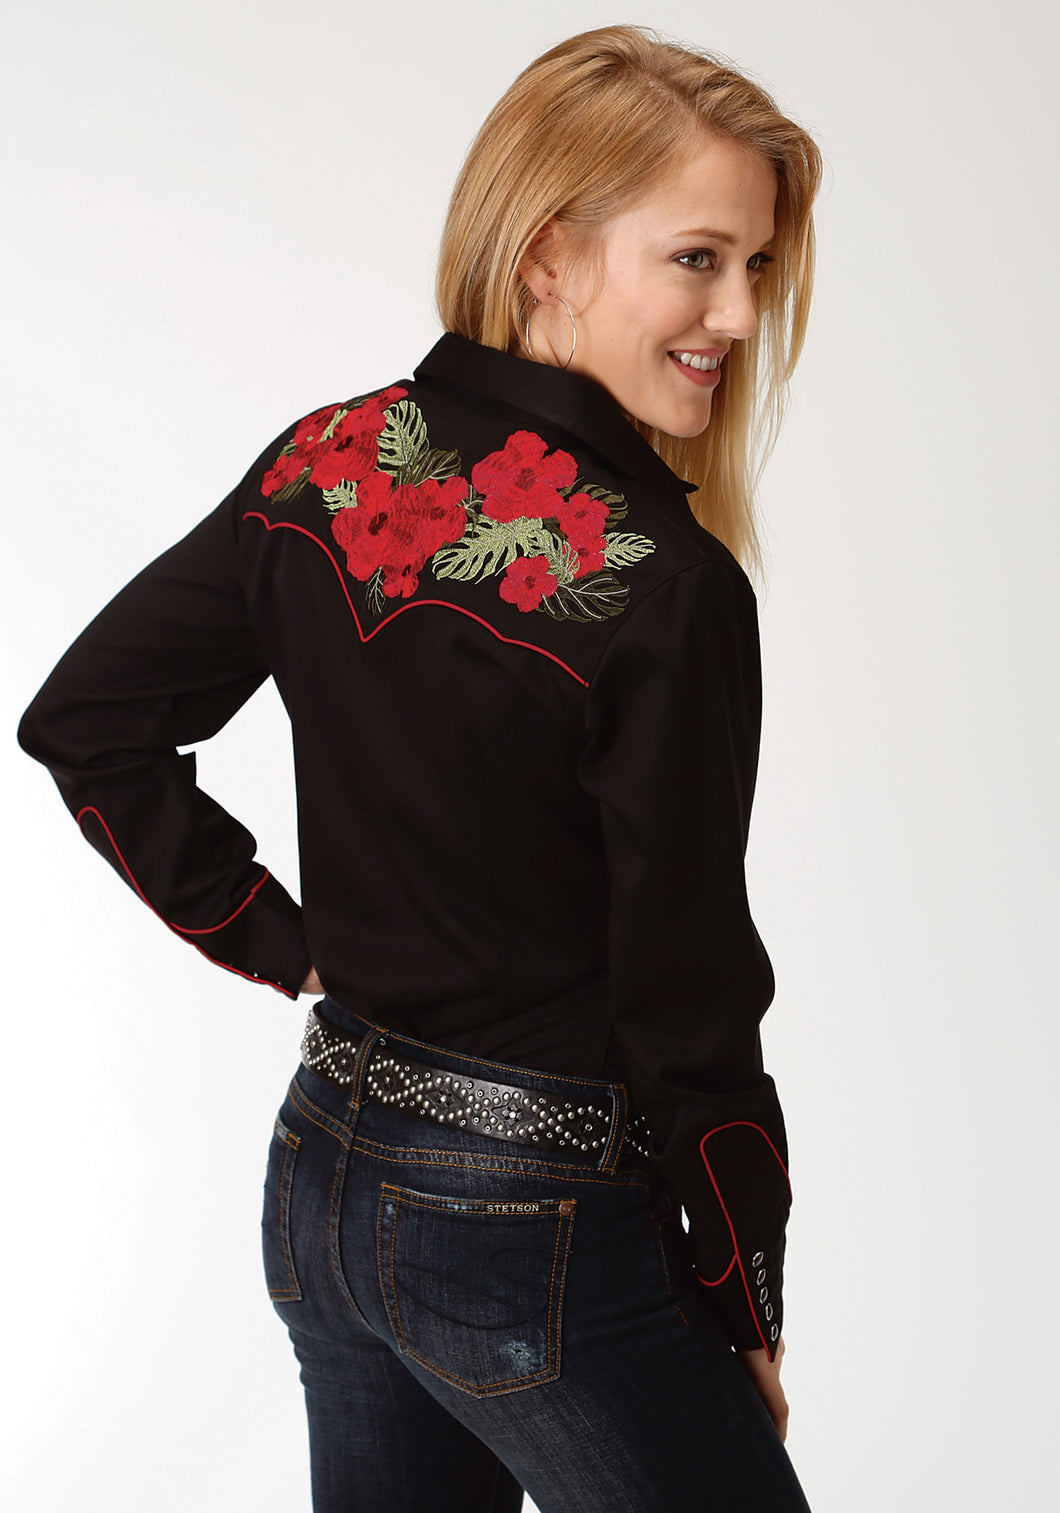 Old West Collection Oldwest Womens Long Sleeve Shirt 1396 Hawaiian Floral Embroidery